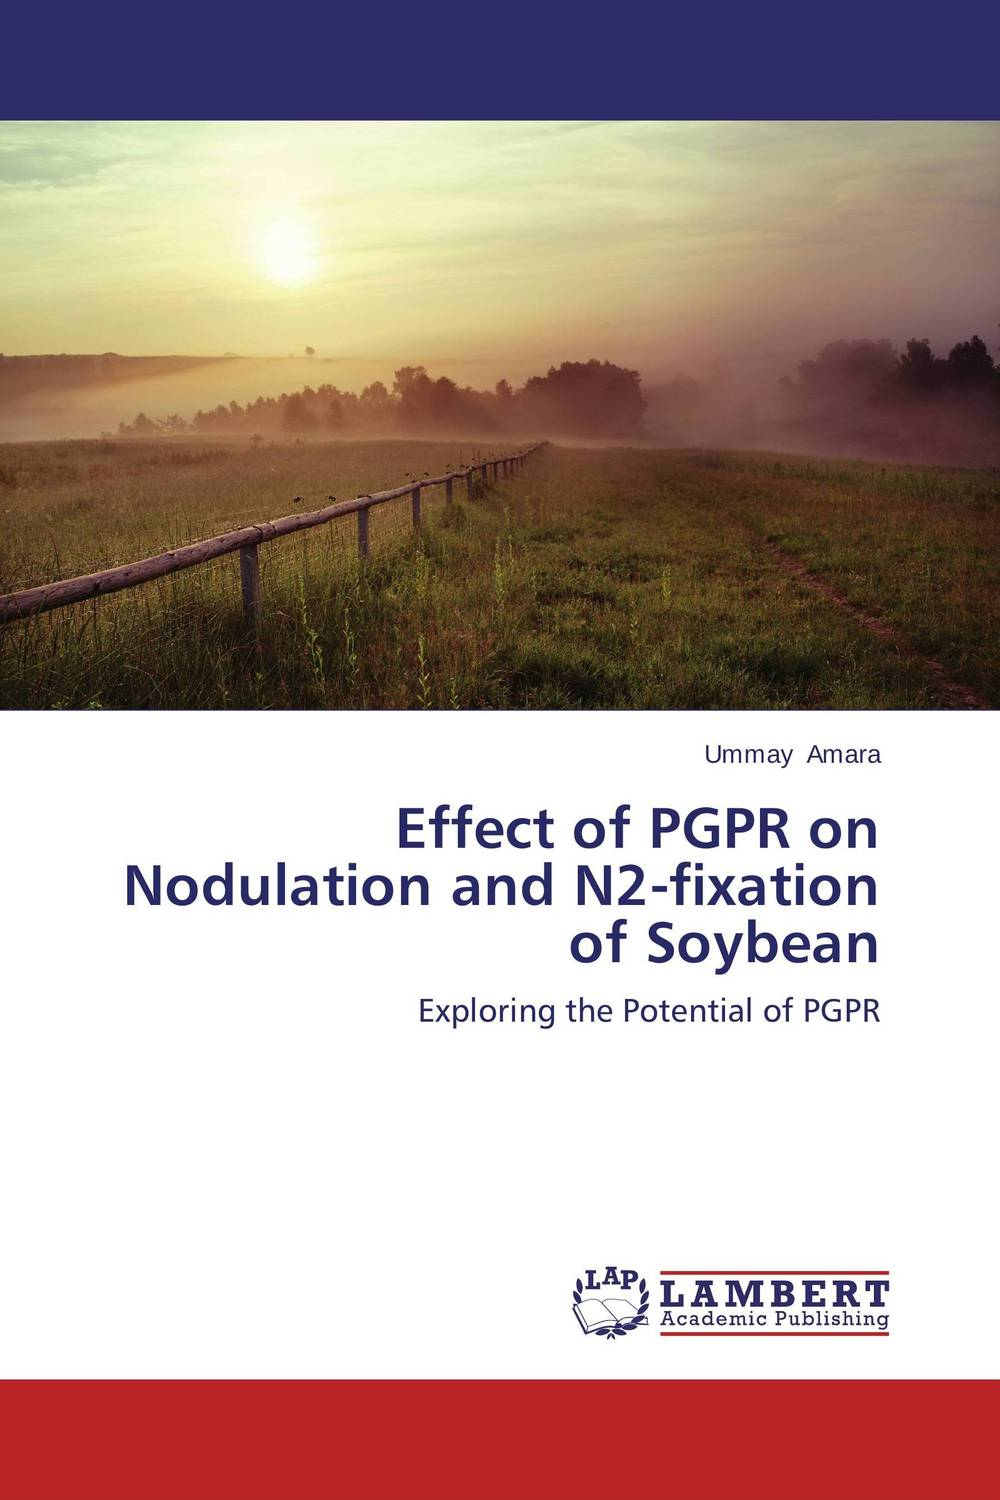 Effect of PGPR on Nodulation and N2-fixation of Soybean vishal polara and pooja bhatt effect of node density and transmission range on zrp